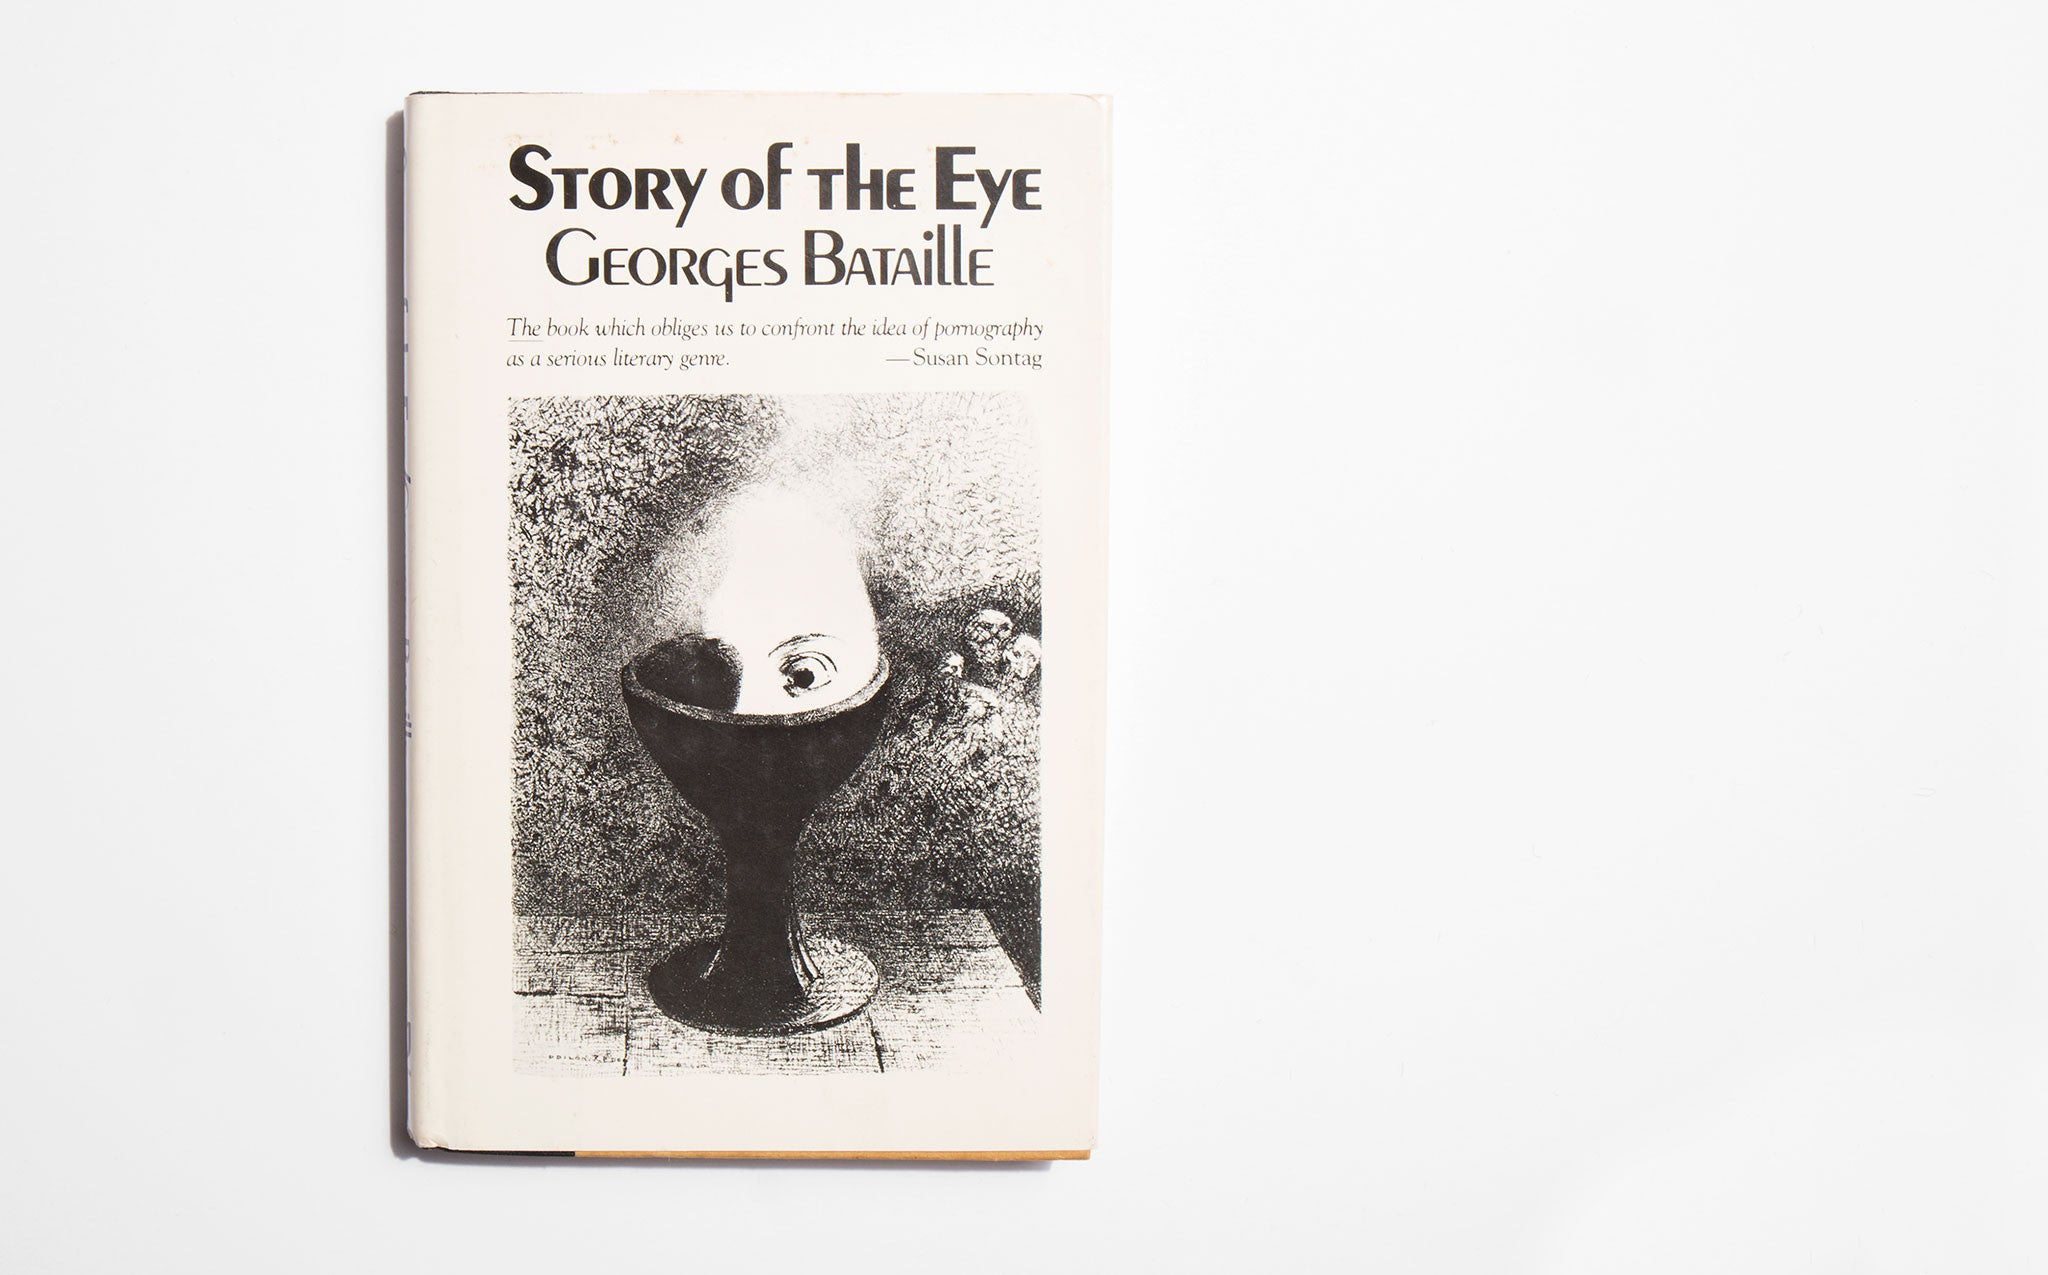 The Story of the Eye - Georges Bataille